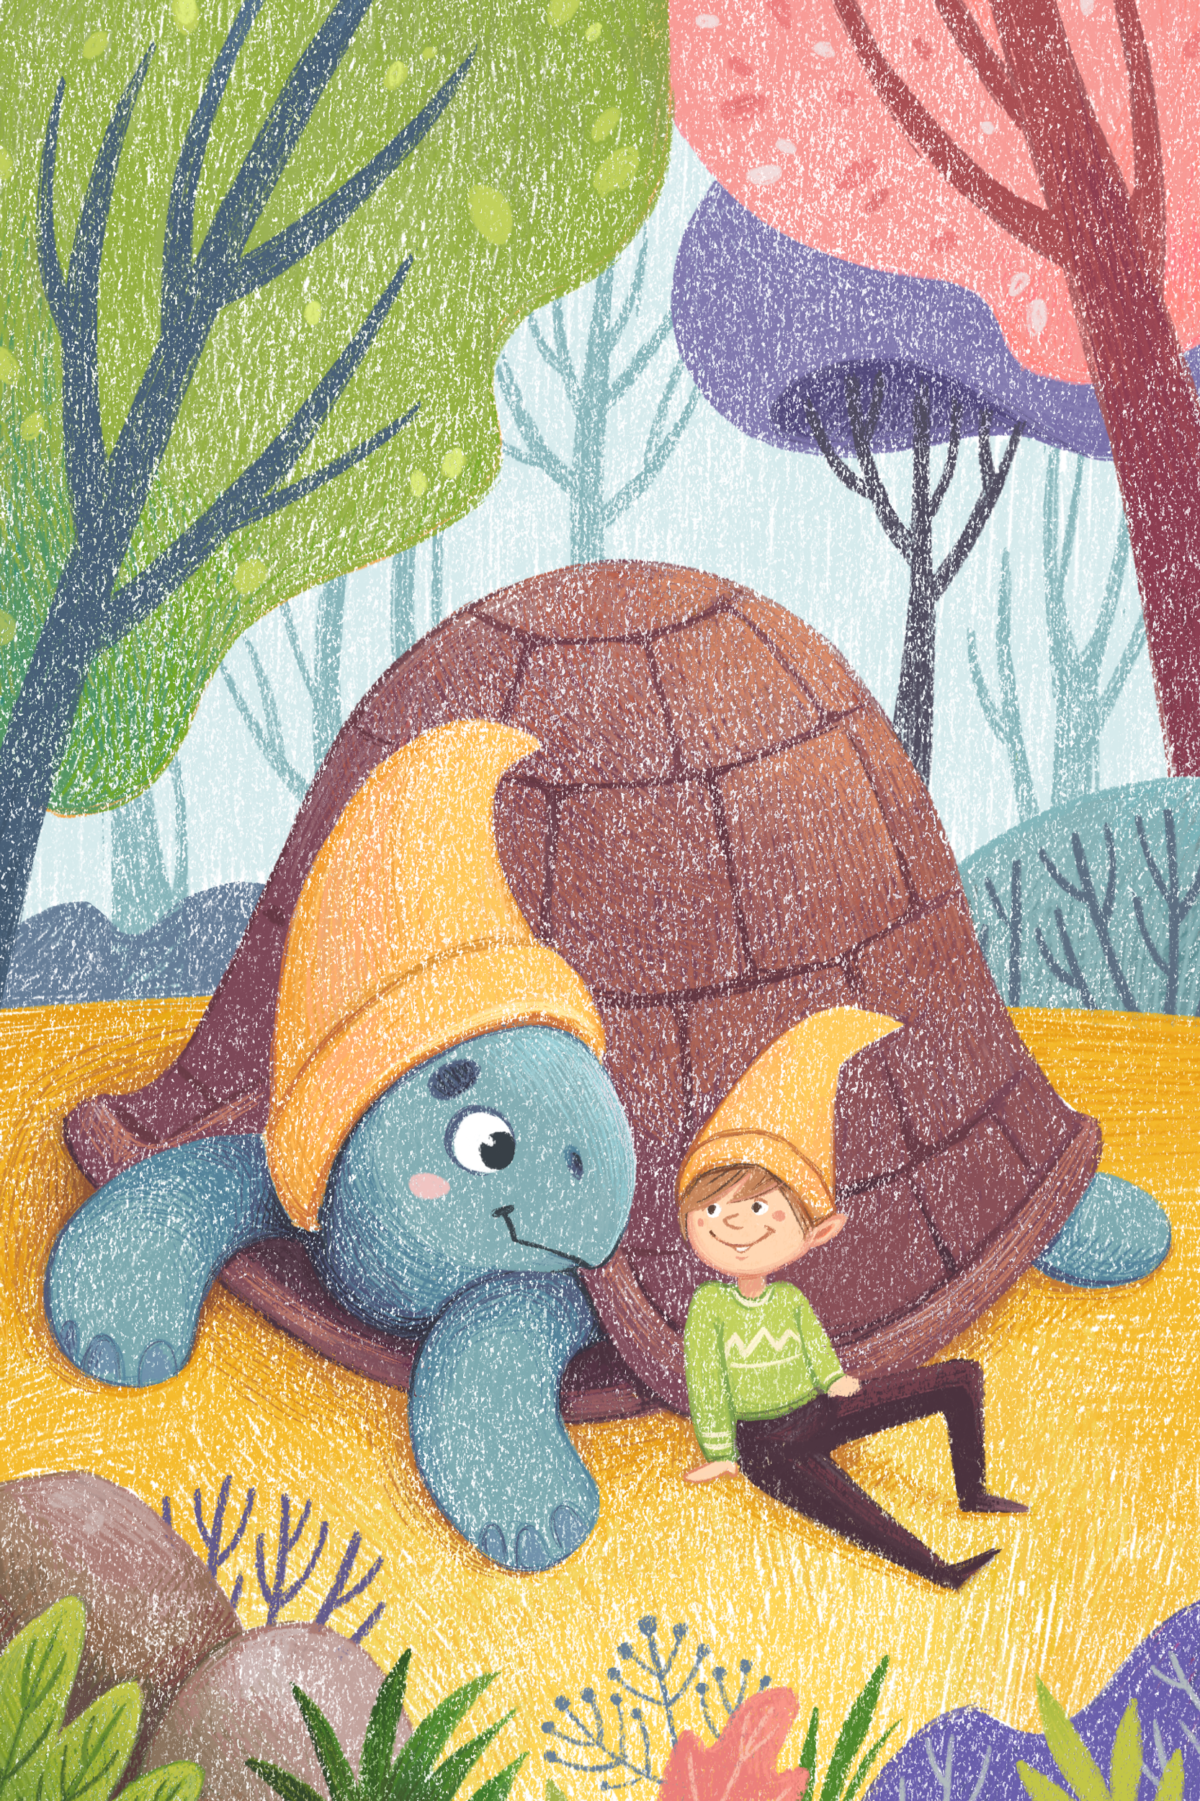 Children's illustration with the turtle by Margarita Levina